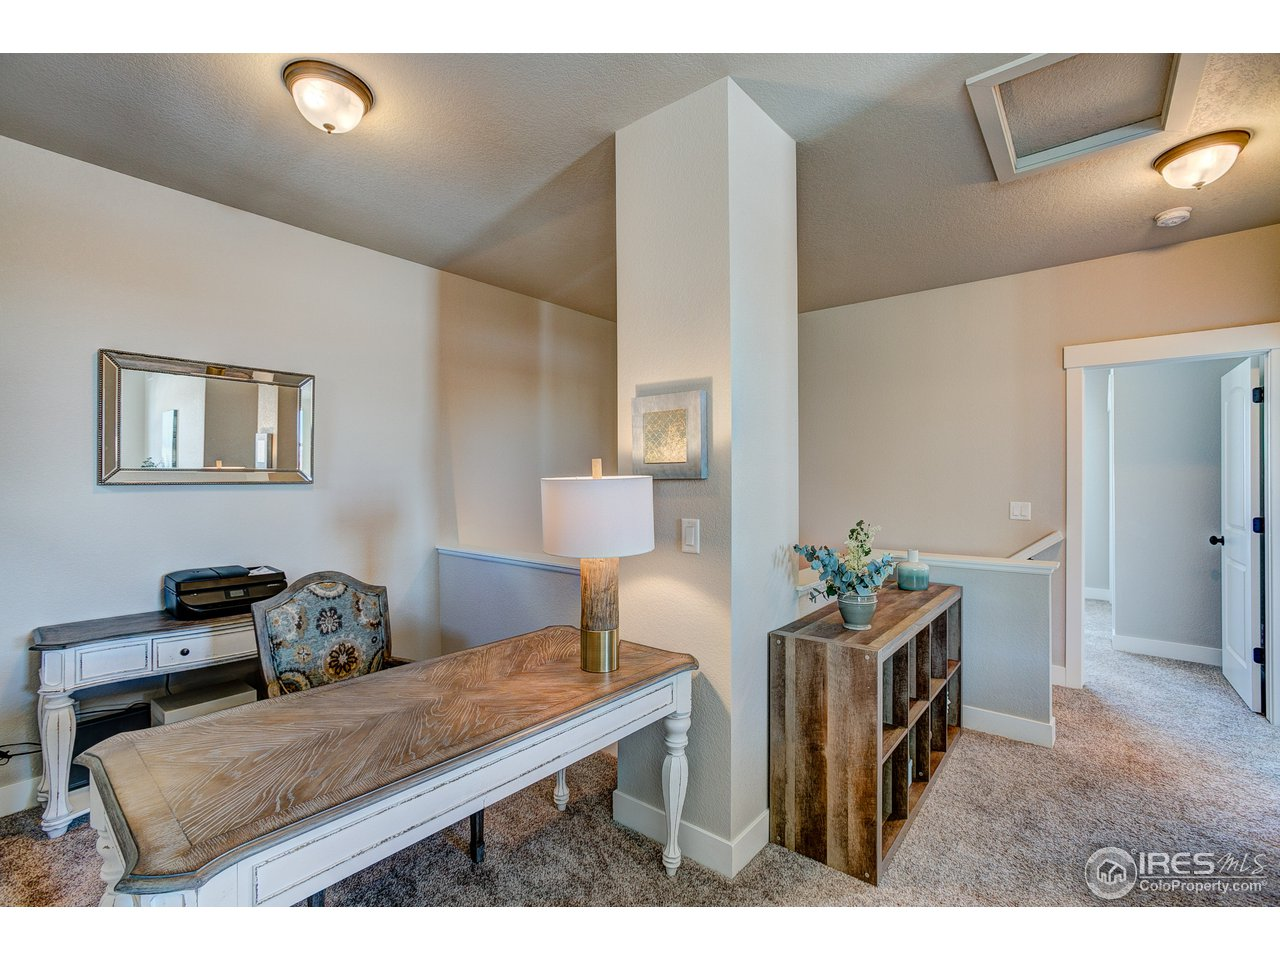 2152 Montauk Ln, #4, Windsor, Windsor, CO 80550